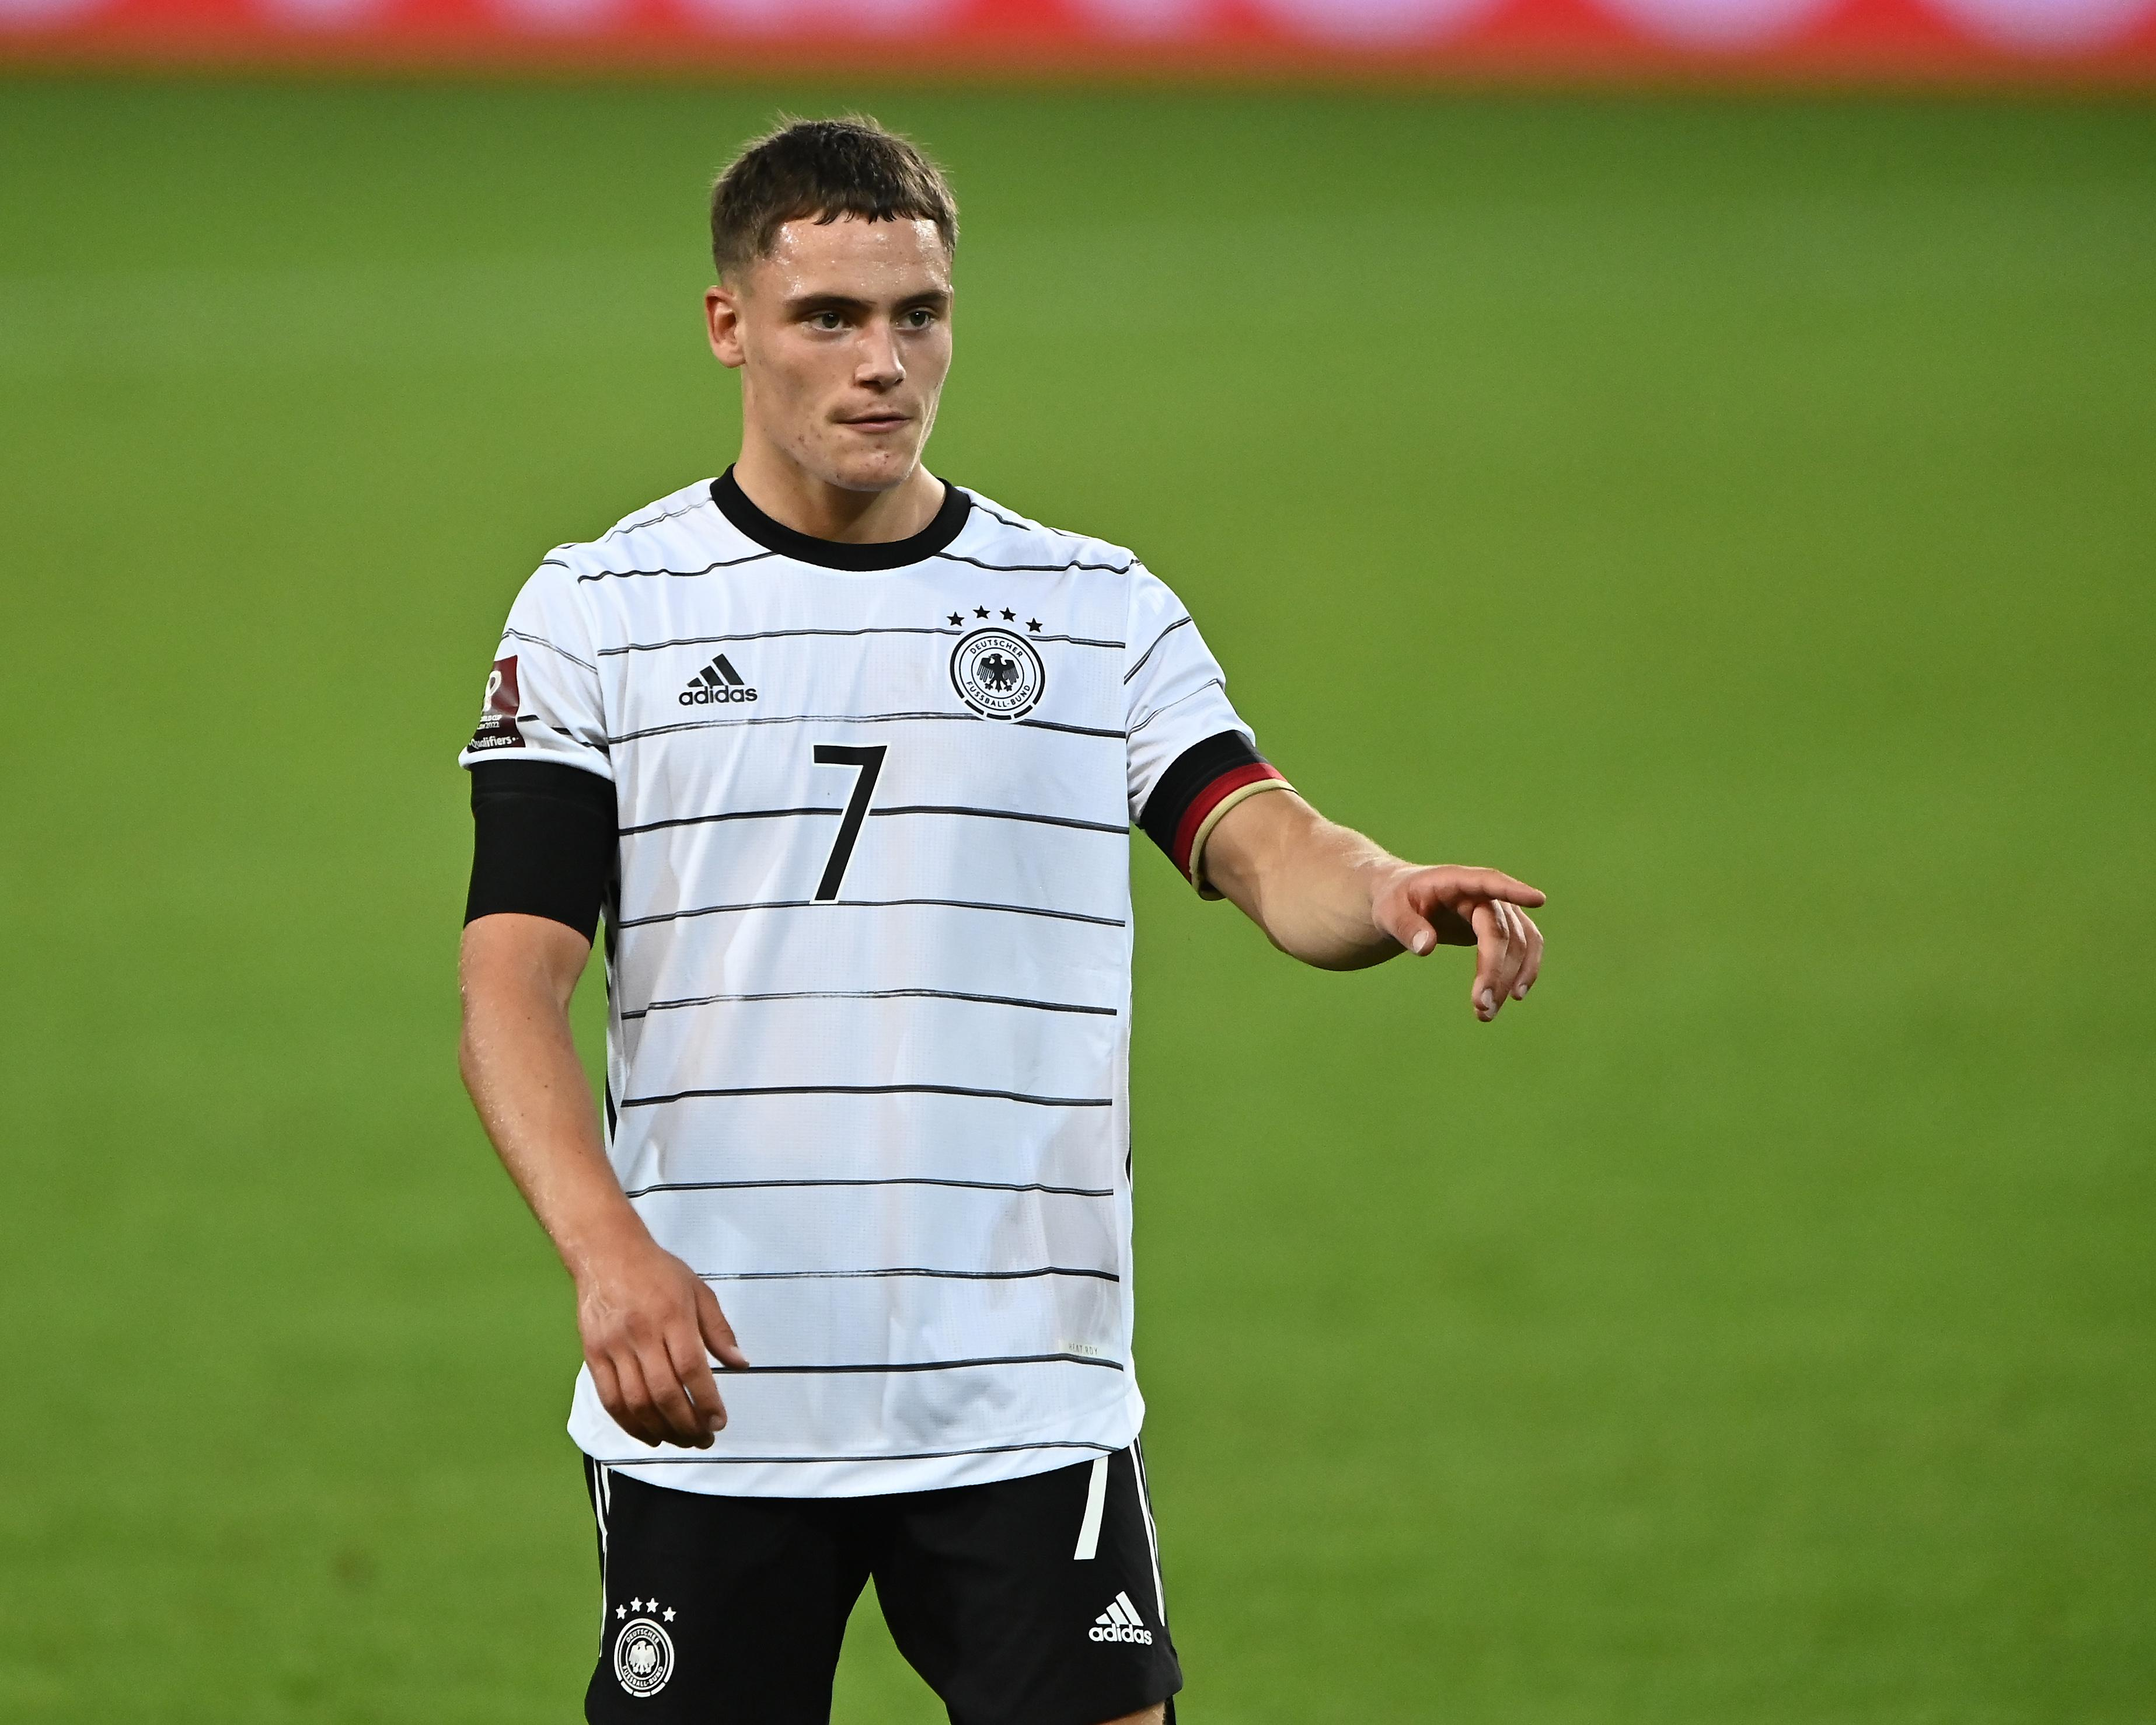 Florian Wirtz gives his team instructions during the 2022 FIFA World Cup Qualifier match between Germany and Armenia